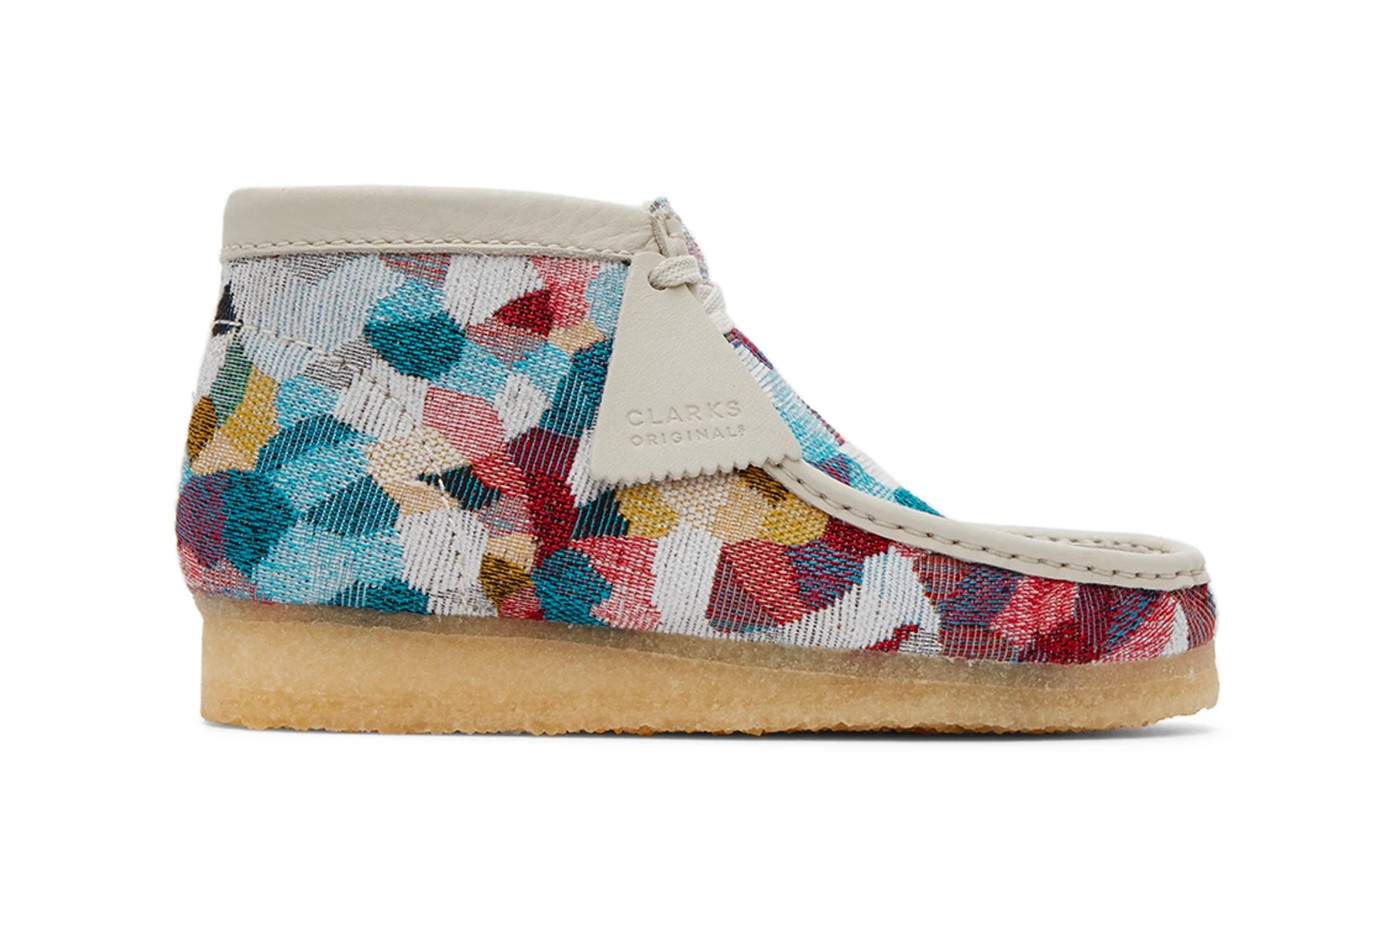 Clarks Wallabee Multicolour